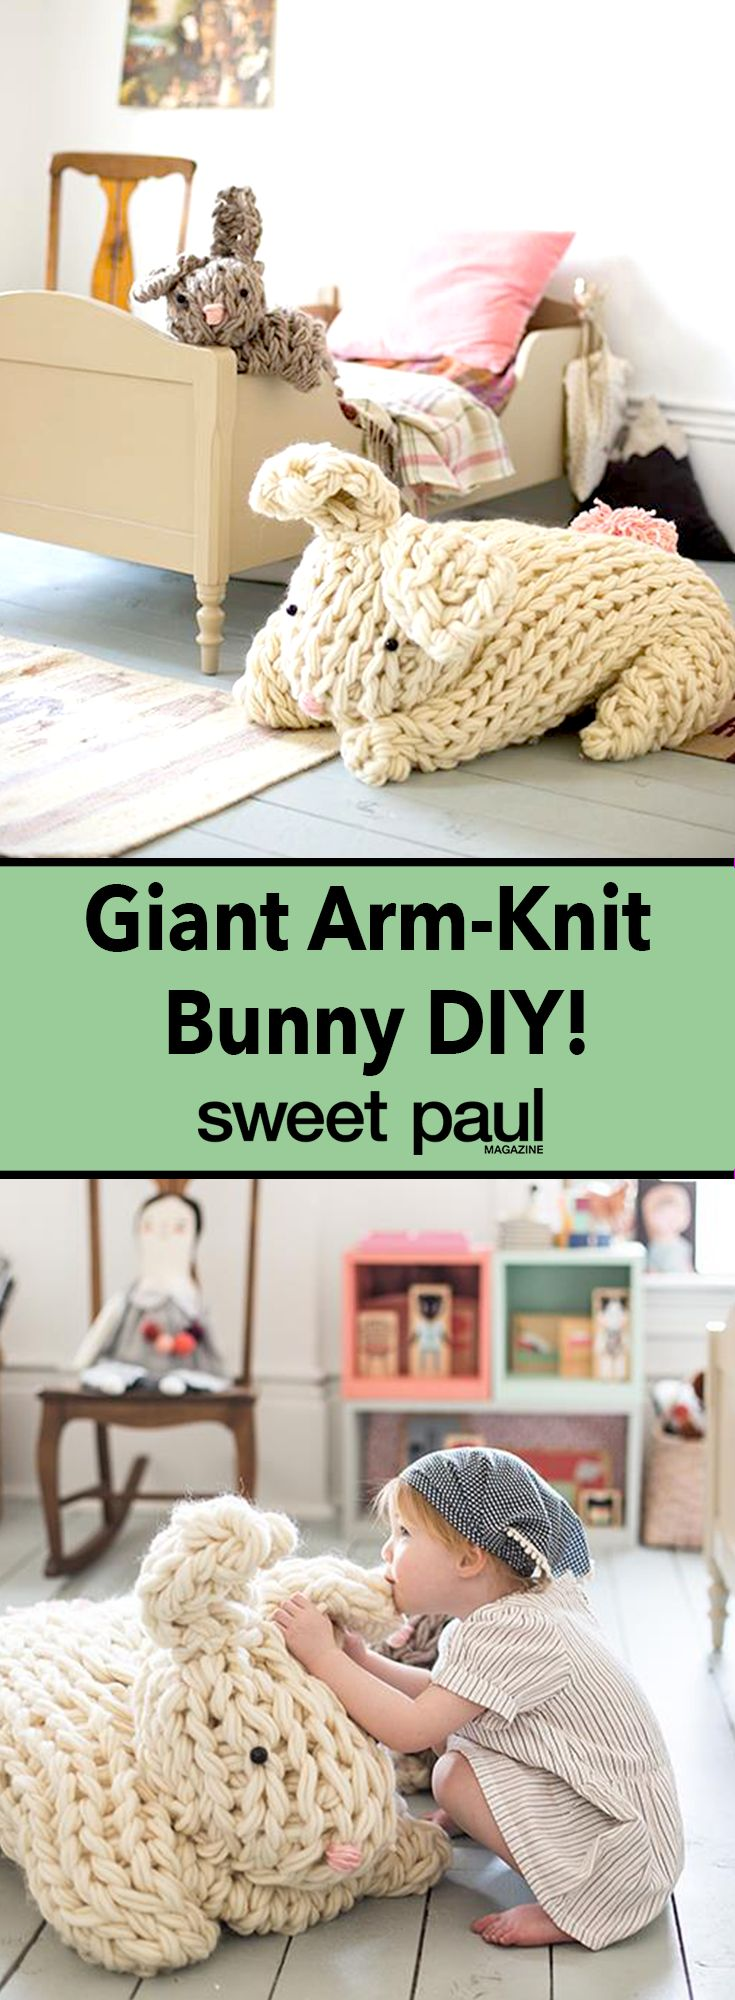 Learn how to knit giant bunnies using your arms instead of knitting needles!